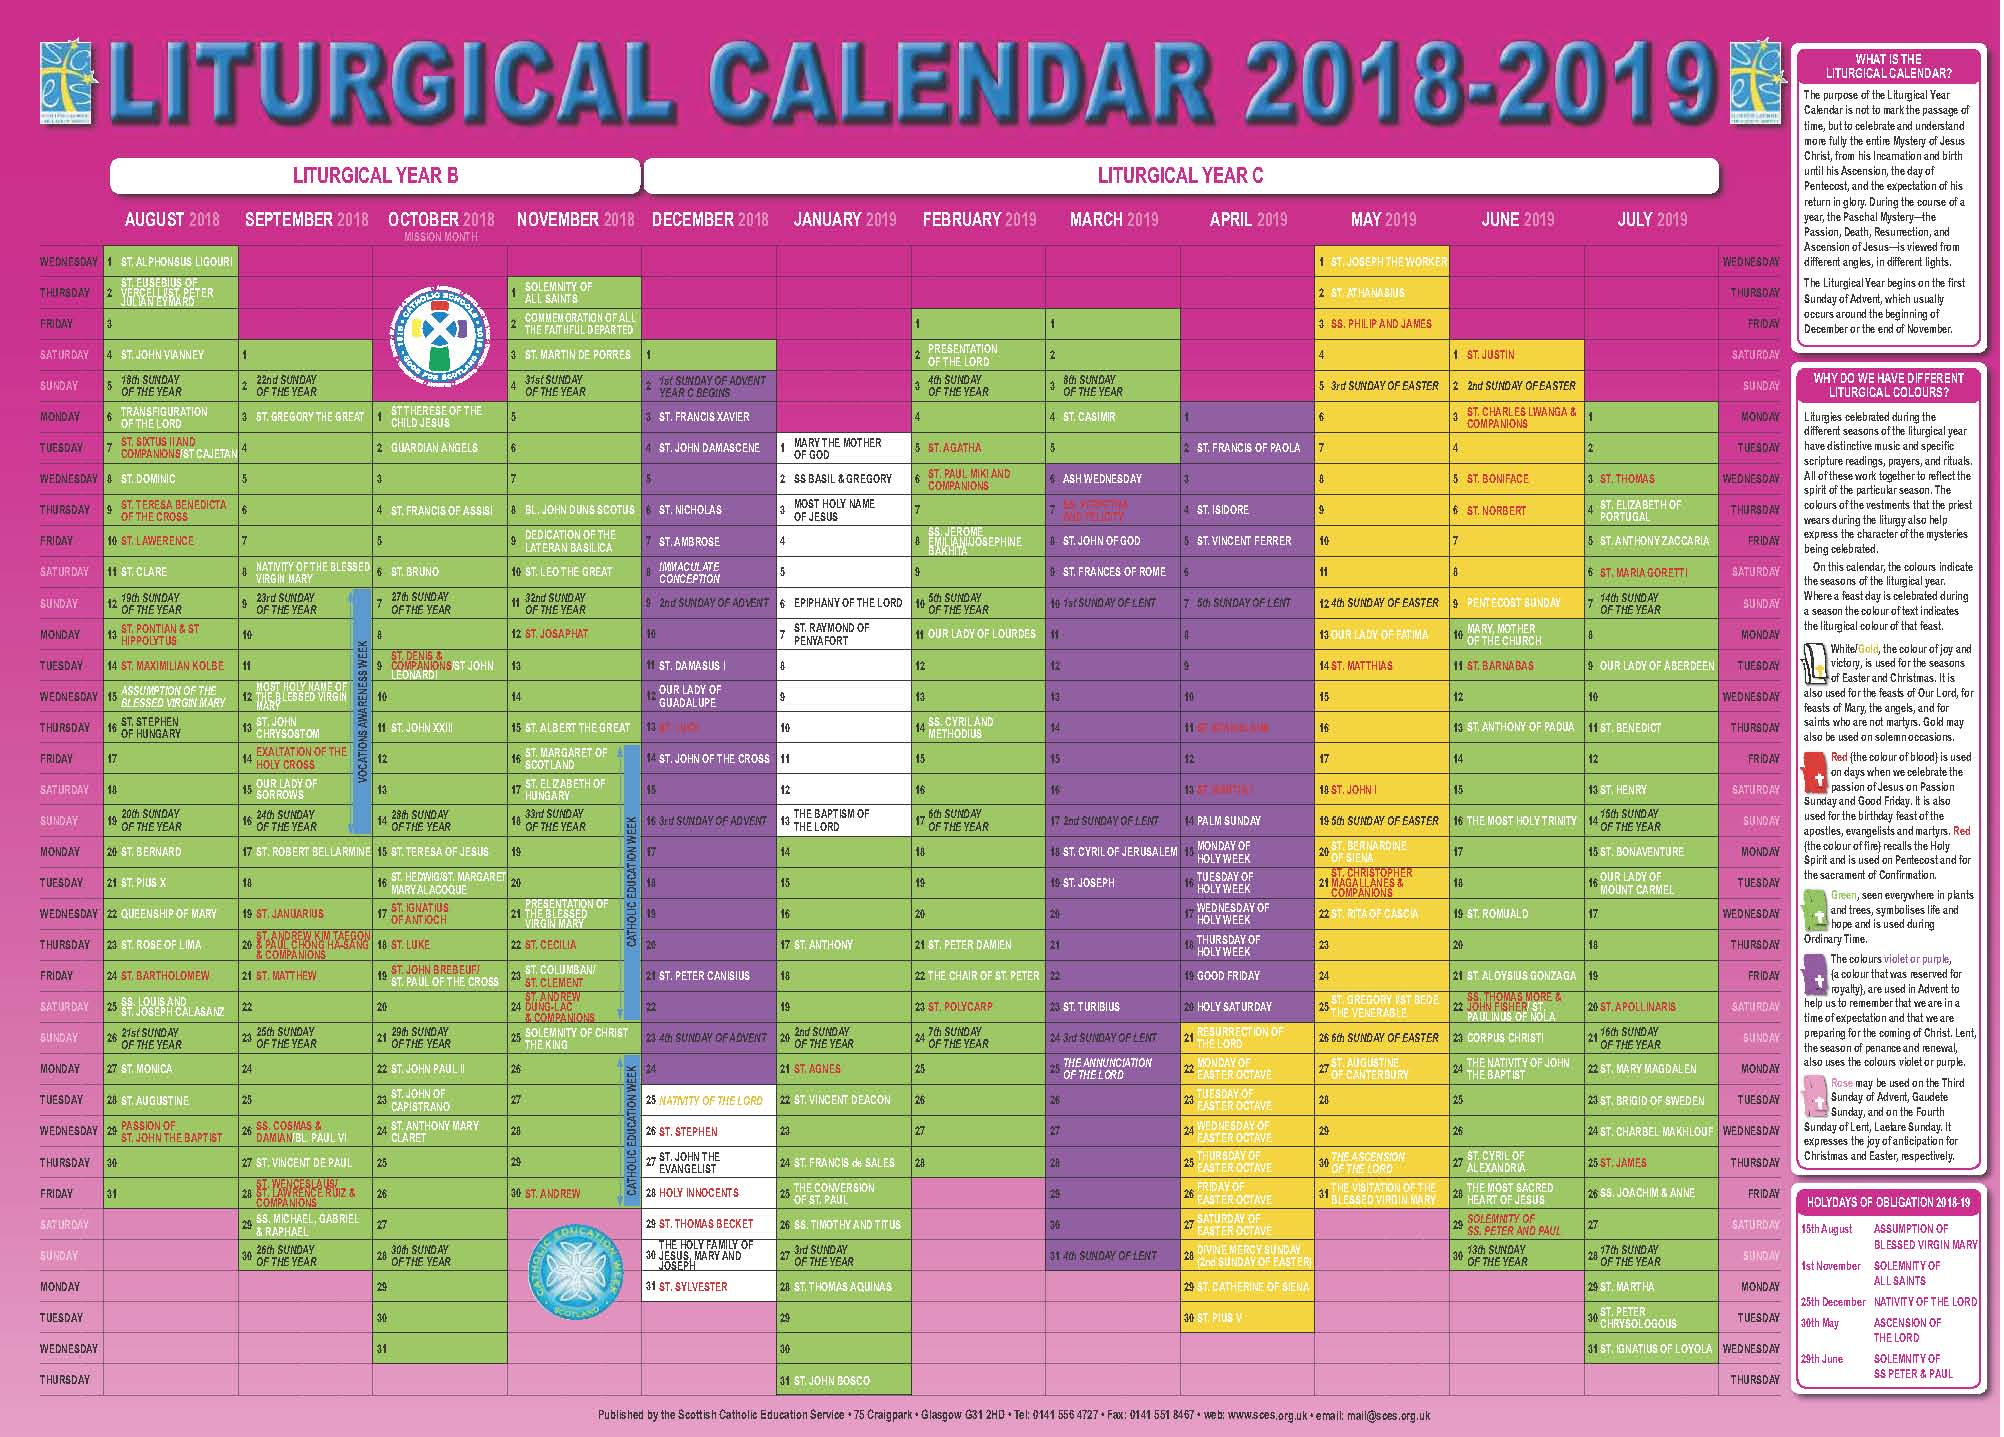 Scottish Catholic Education Service | Sces | Liturgical Calendar inside Catholic Liturgical Calendar 2020 Pdf